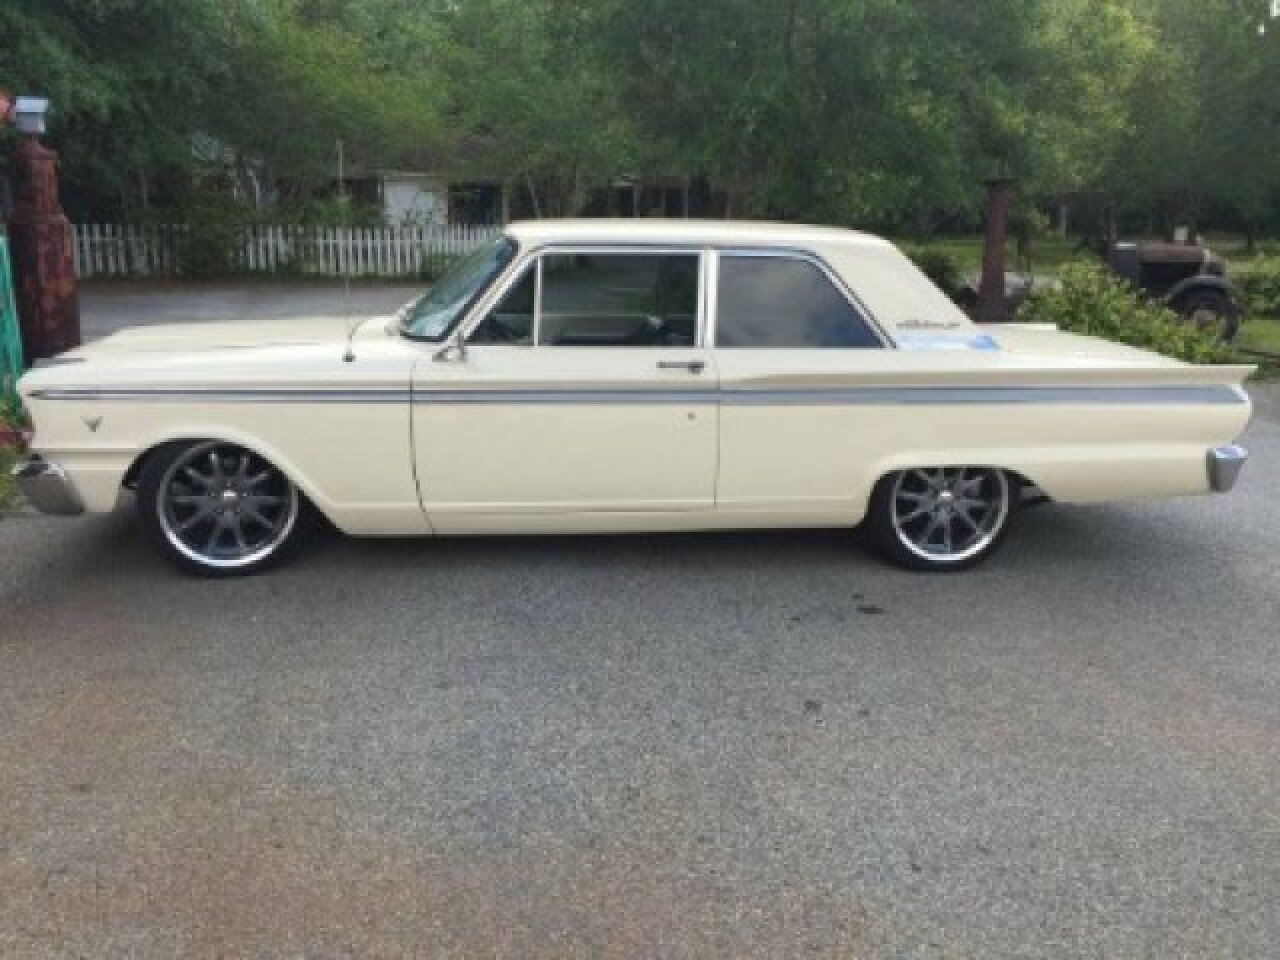 1963 As Is For Sale In Tbilisi: 1963 Ford Fairlane For Sale Near Mundelein, Illinois 60060